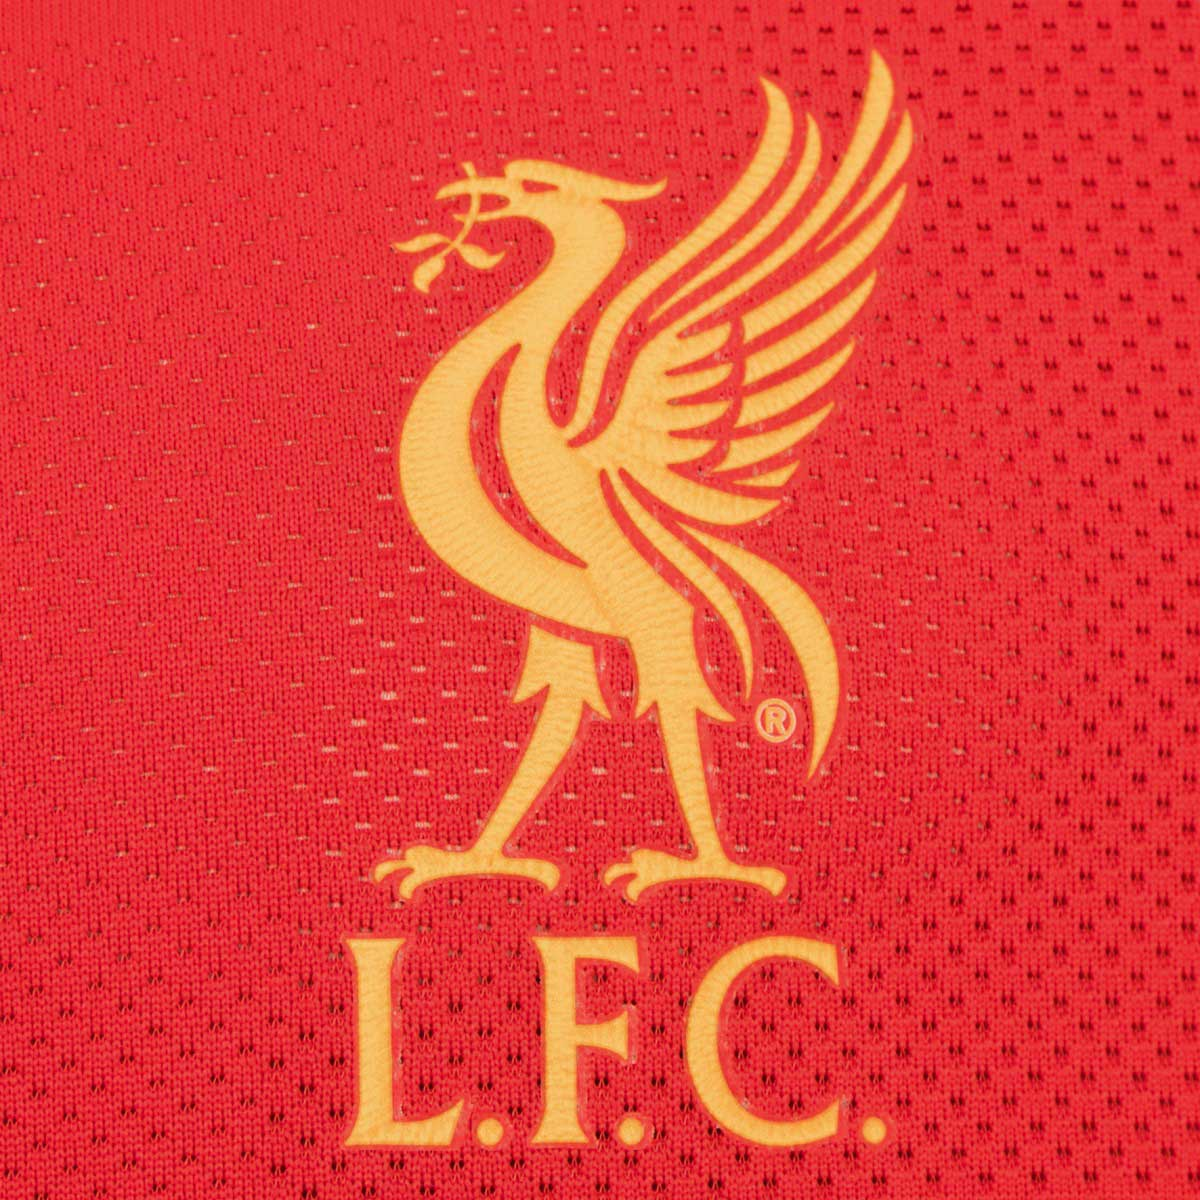 Liverpool 16-17 Home Kit Released